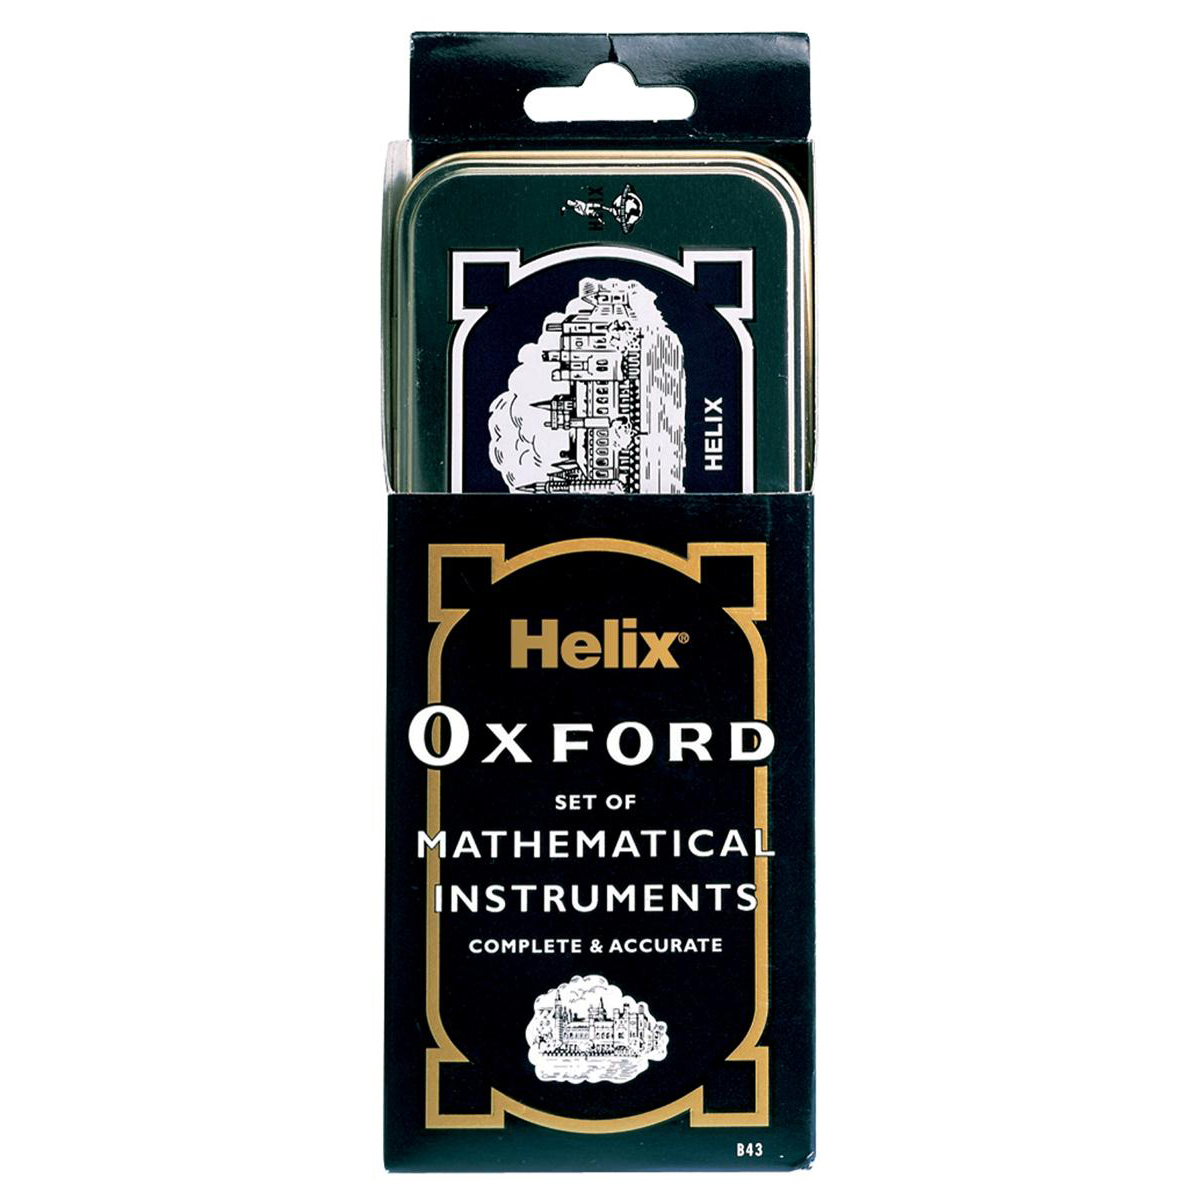 Middle School math kits Helix Oxford Maths Set includes Various Stationery Items and Storage Tin Black Ref B43000